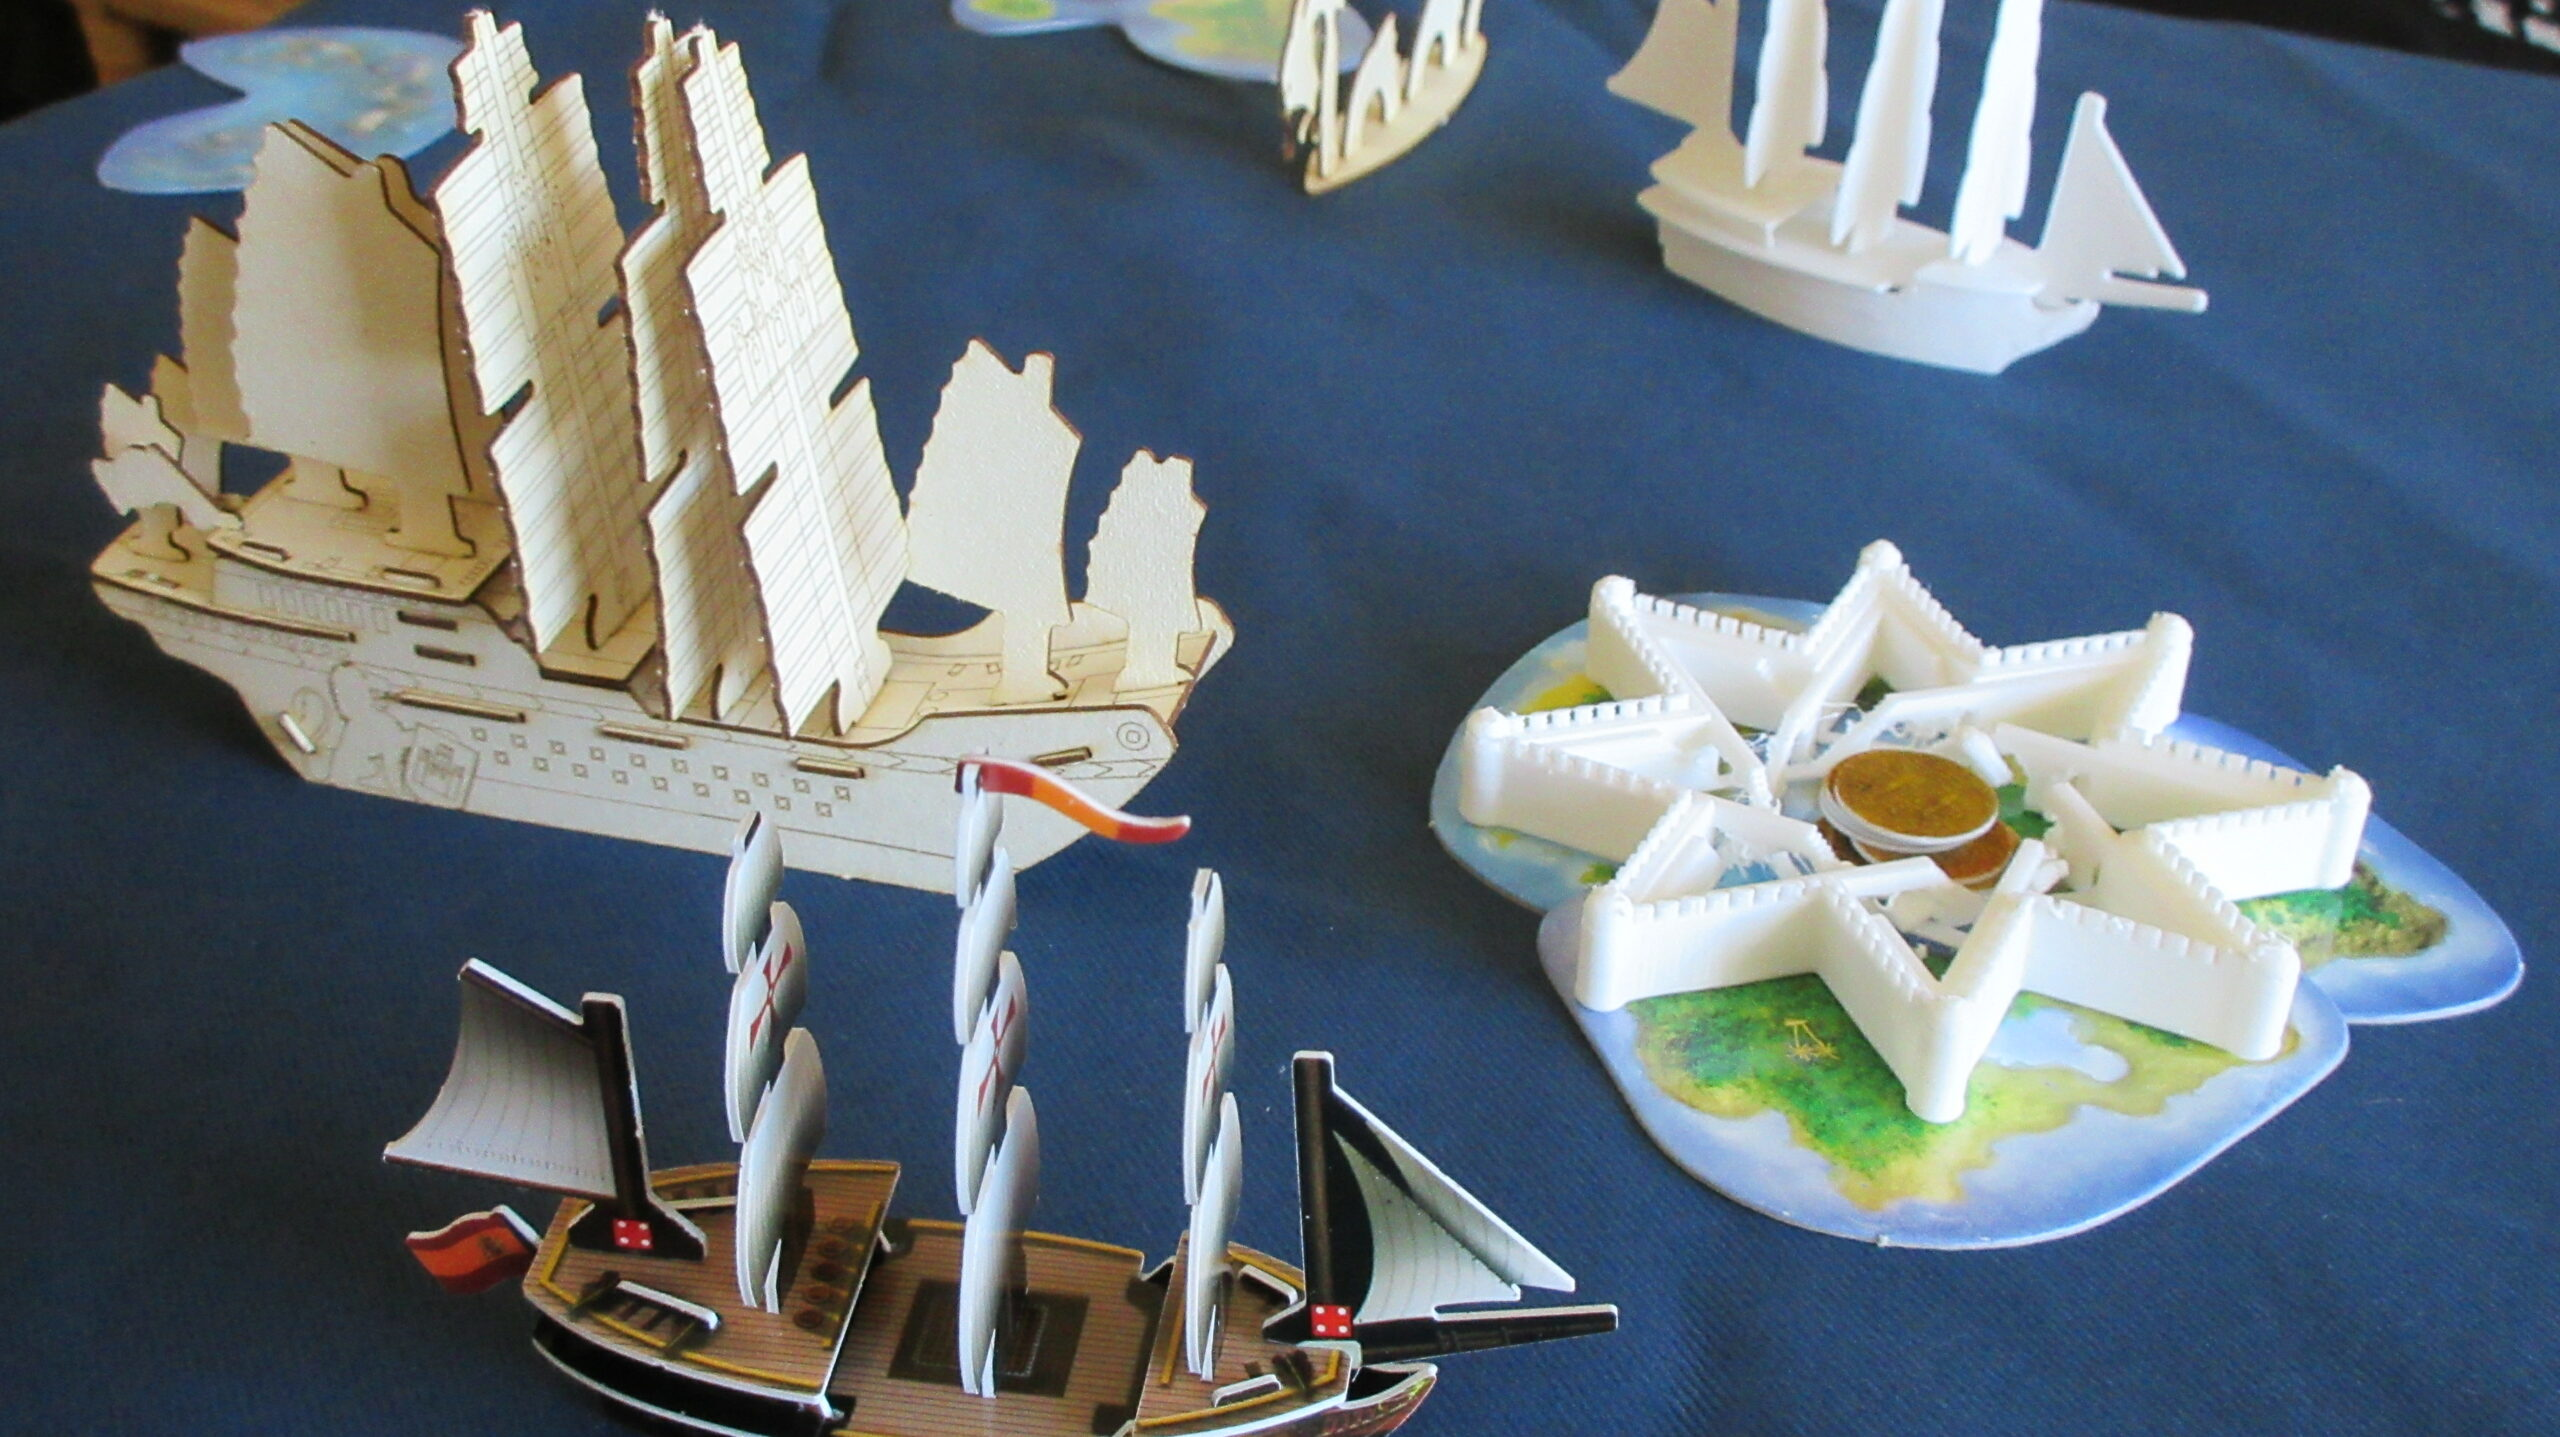 Pirates CSG concept game with 3D printed and wooden ships